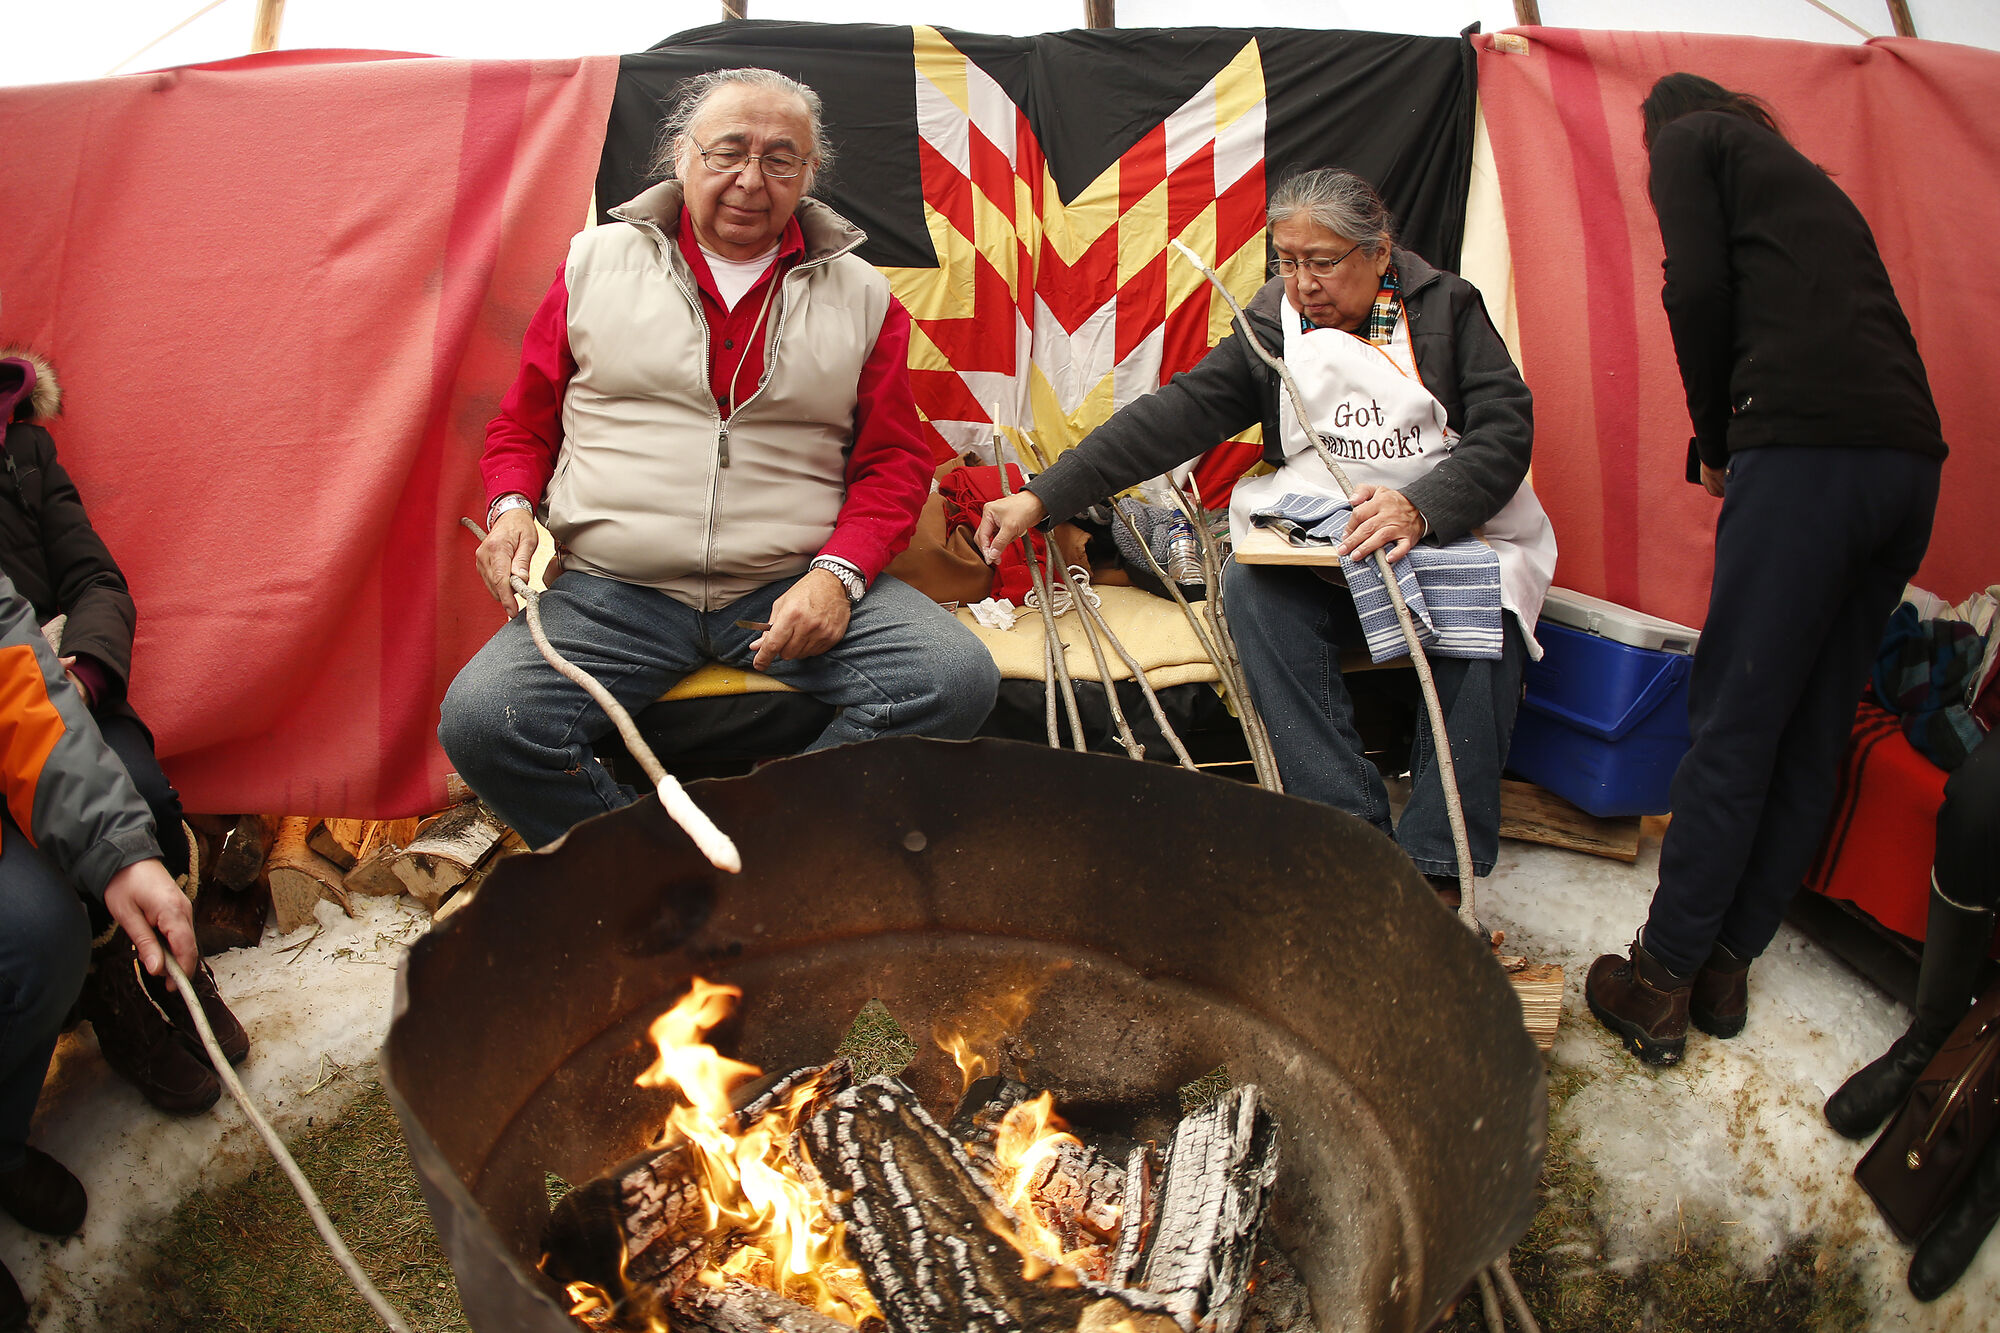 Clarence and Barbara Nepinak cook bannock in a teepee at The Forks on Jan. 15, 2017. (John Woods / Winnipeg Free Press files)